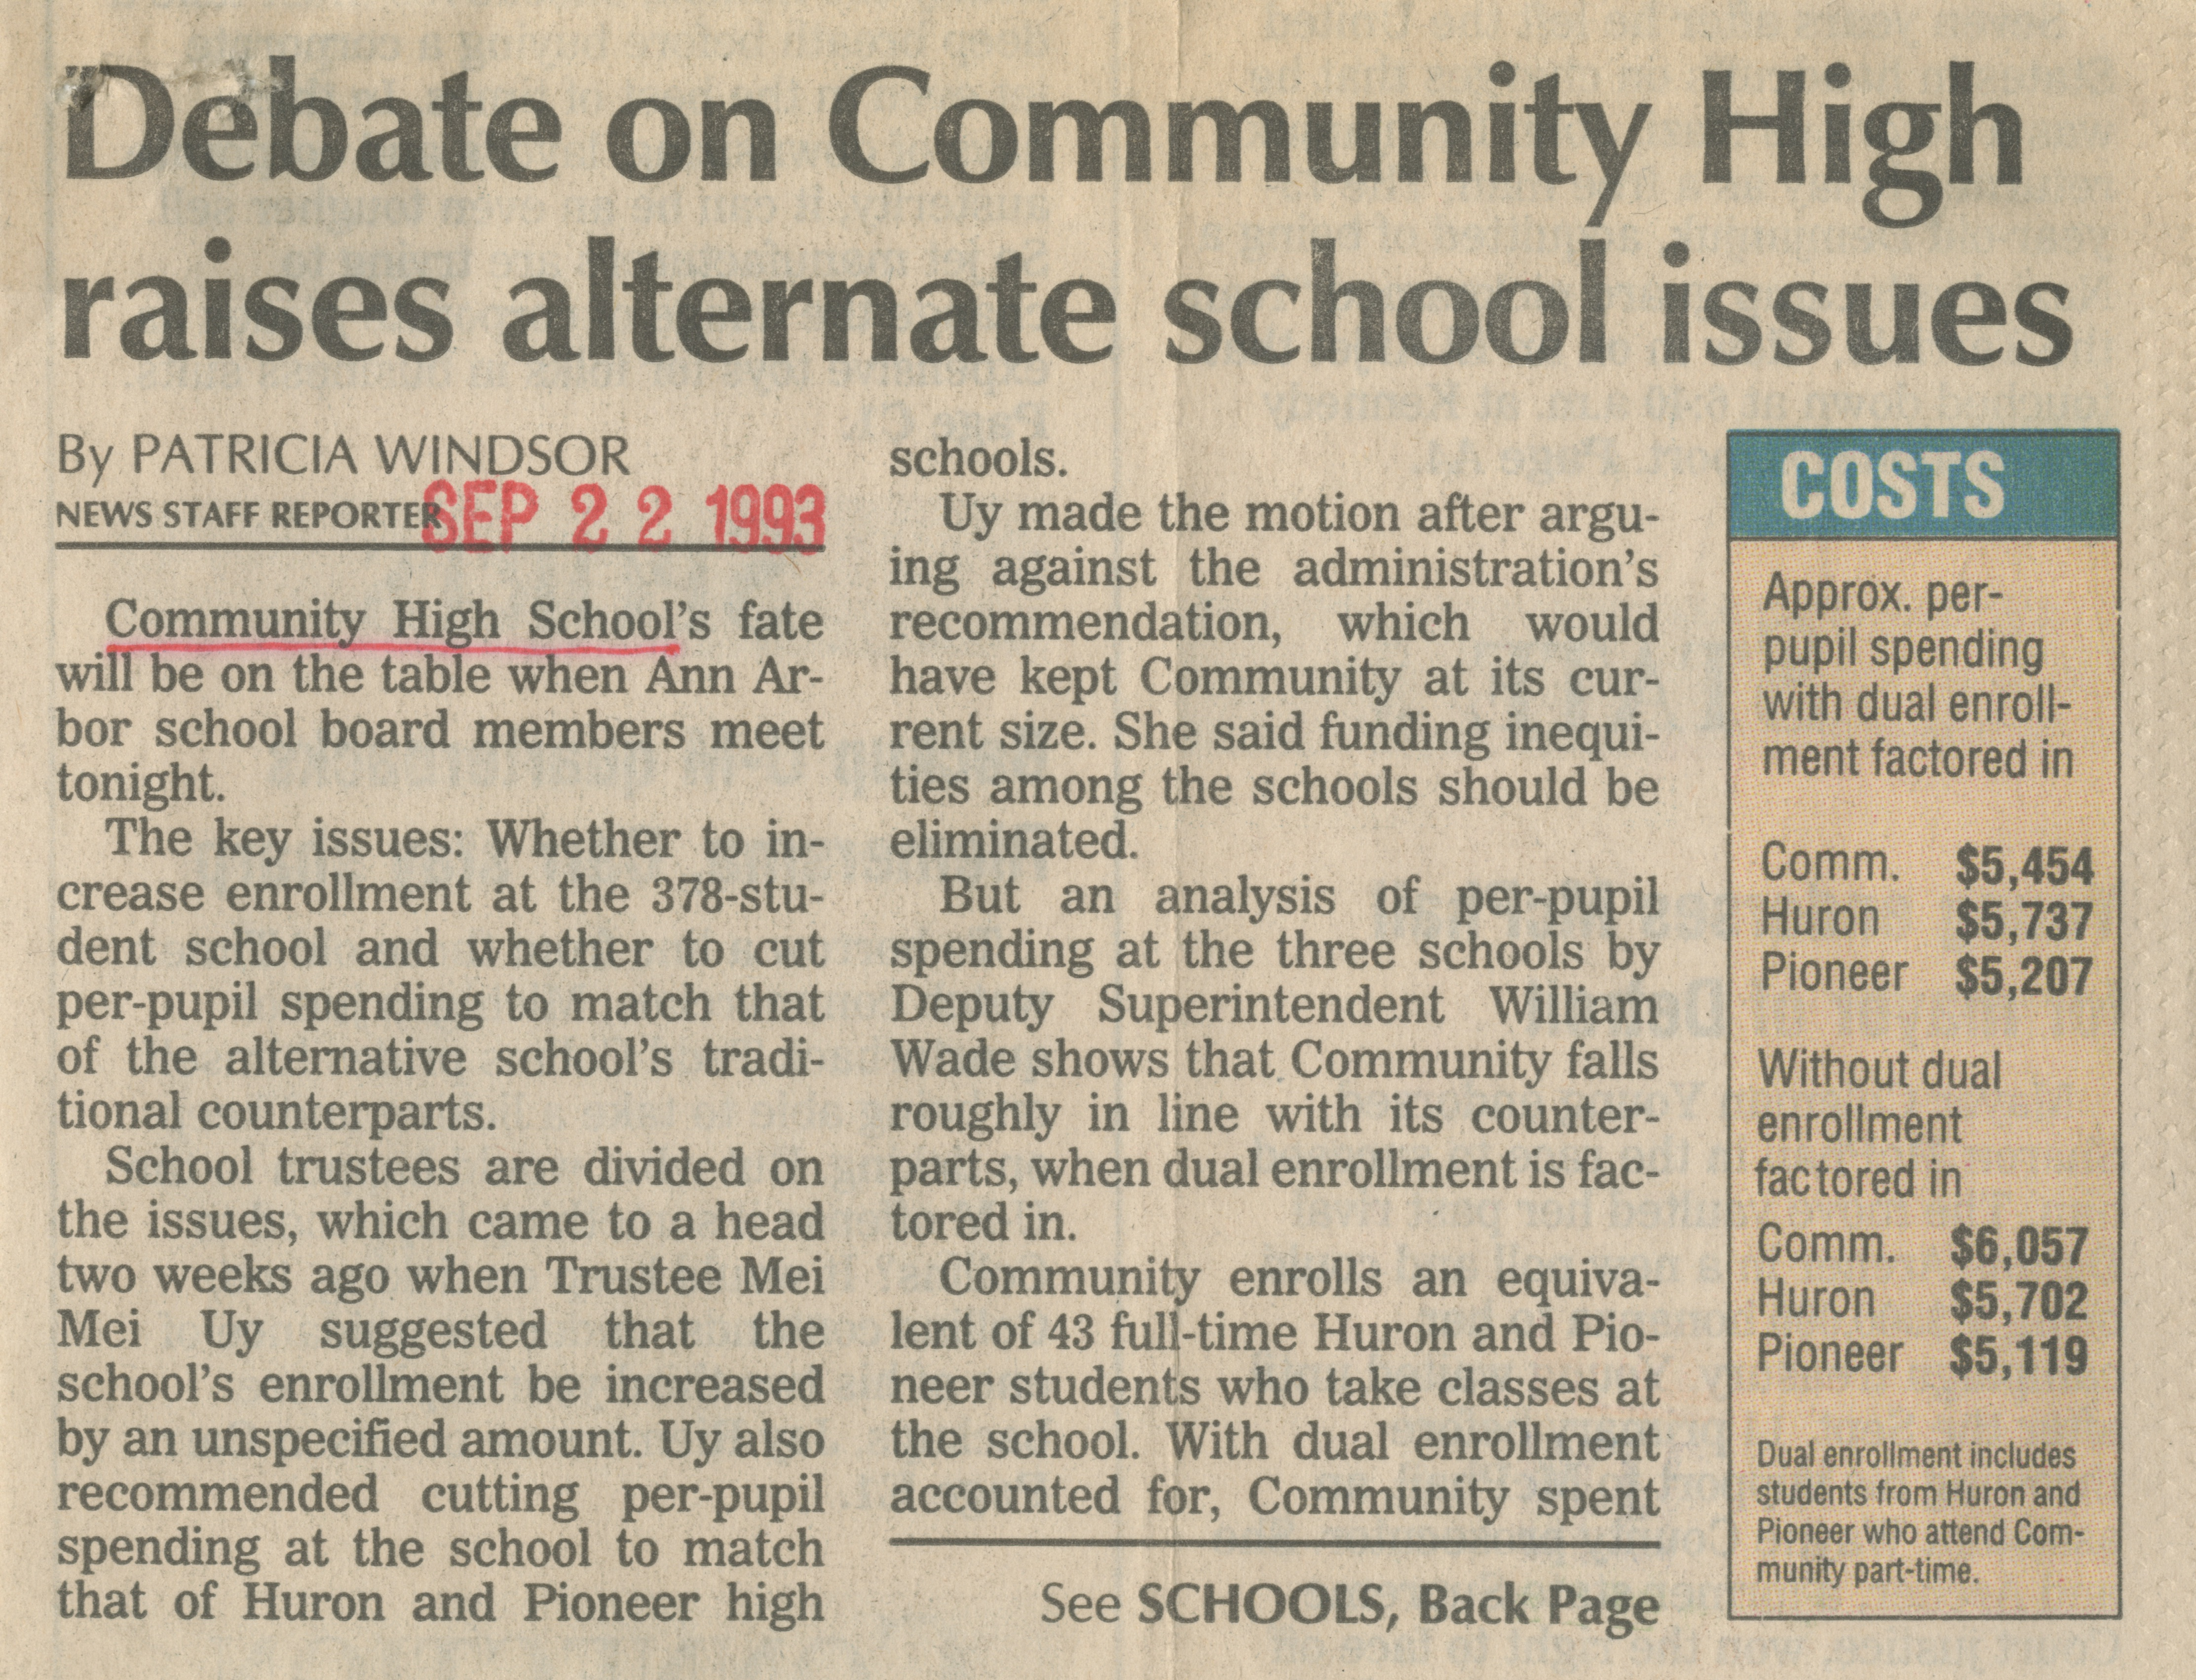 Debate on Community High raises alternate school issues image